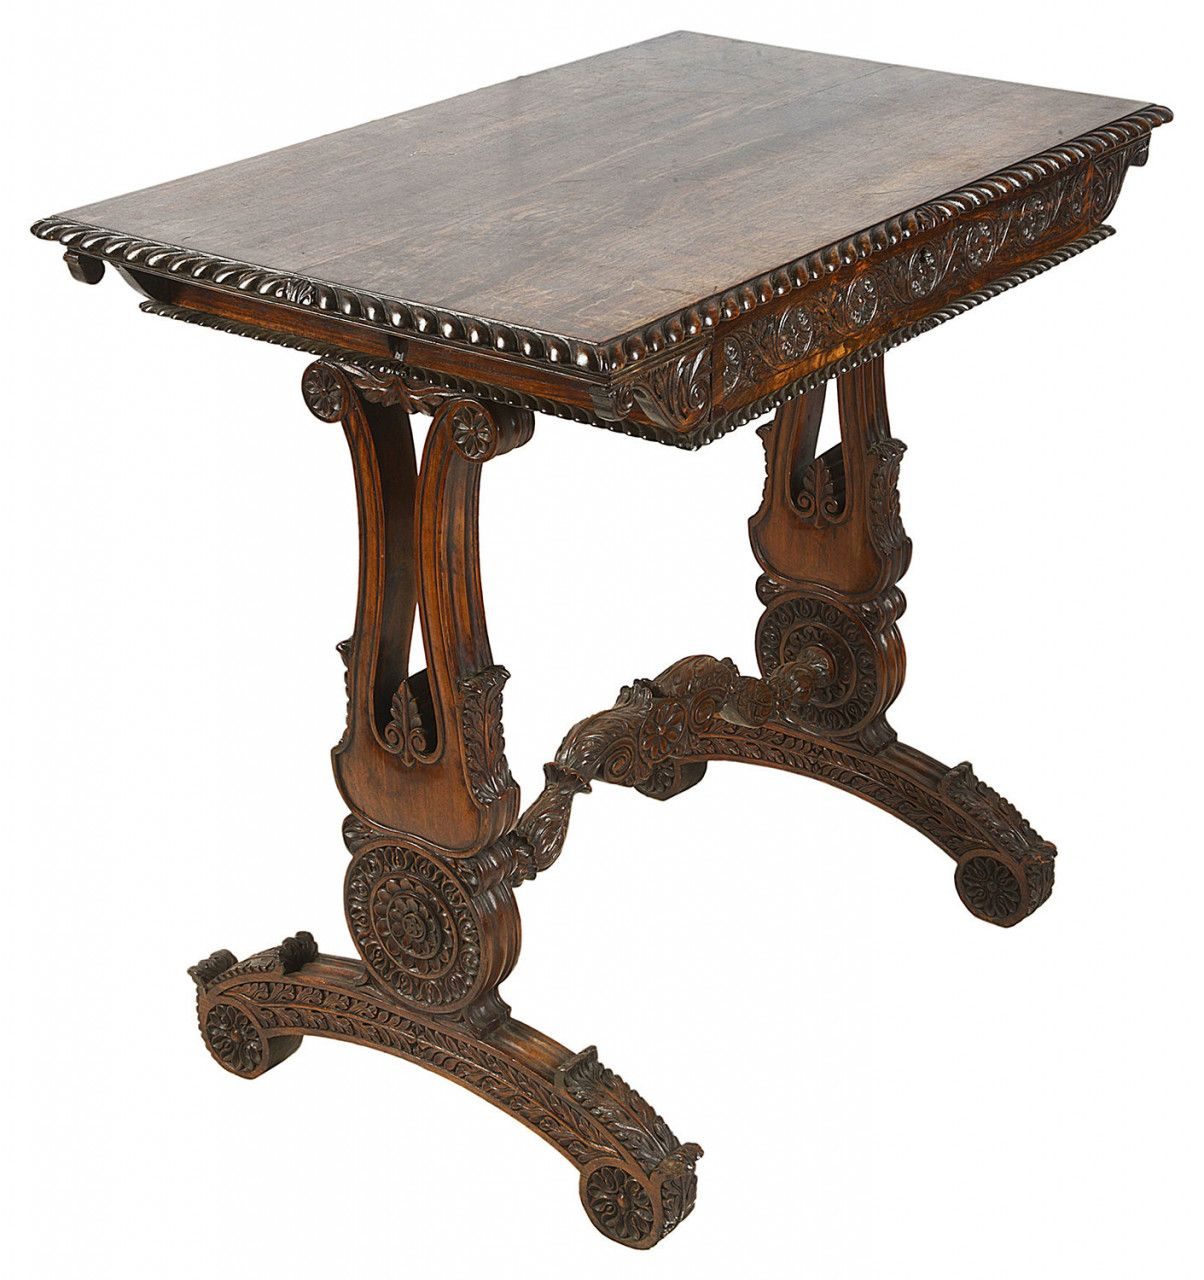 28 Best Of Indian Carved Wood Coffee Table 2020 Coffee Table Wood Coffee Table Gold Stool [ 1280 x 1204 Pixel ]